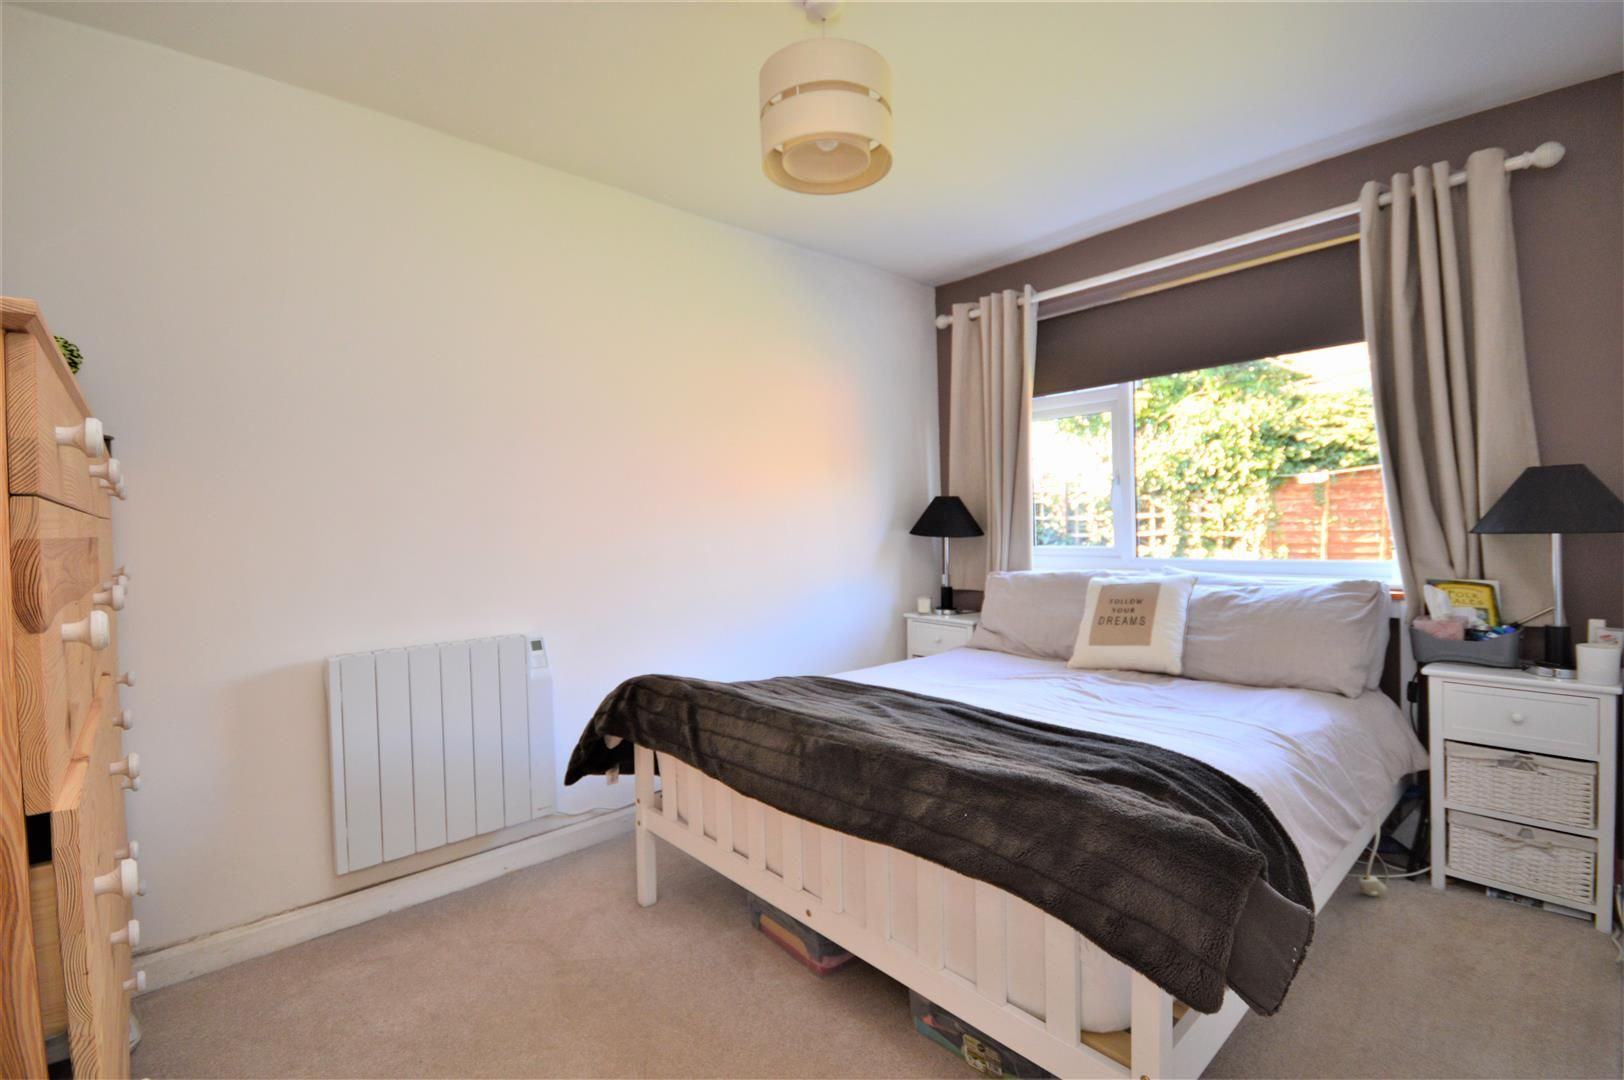 2 bed semi-detached-bungalow for sale in Marden 4